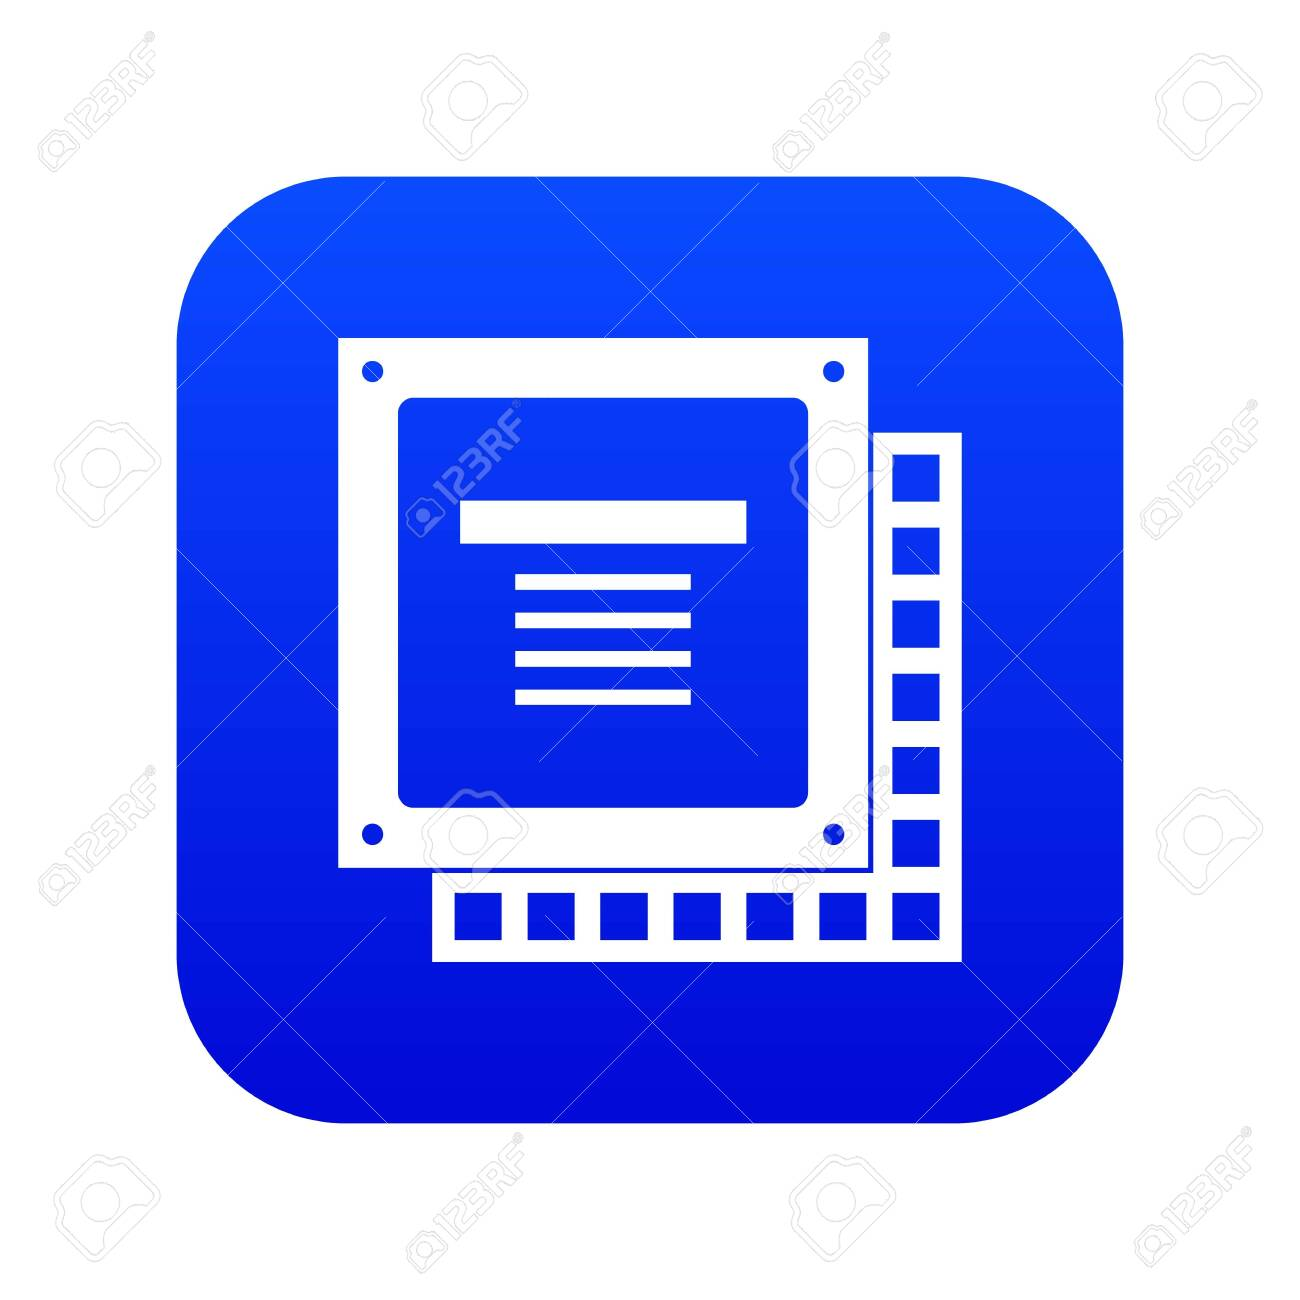 computer cpu processor chip icon digital blue for any design royalty free cliparts vectors and stock illustration image 126853310 123rf com